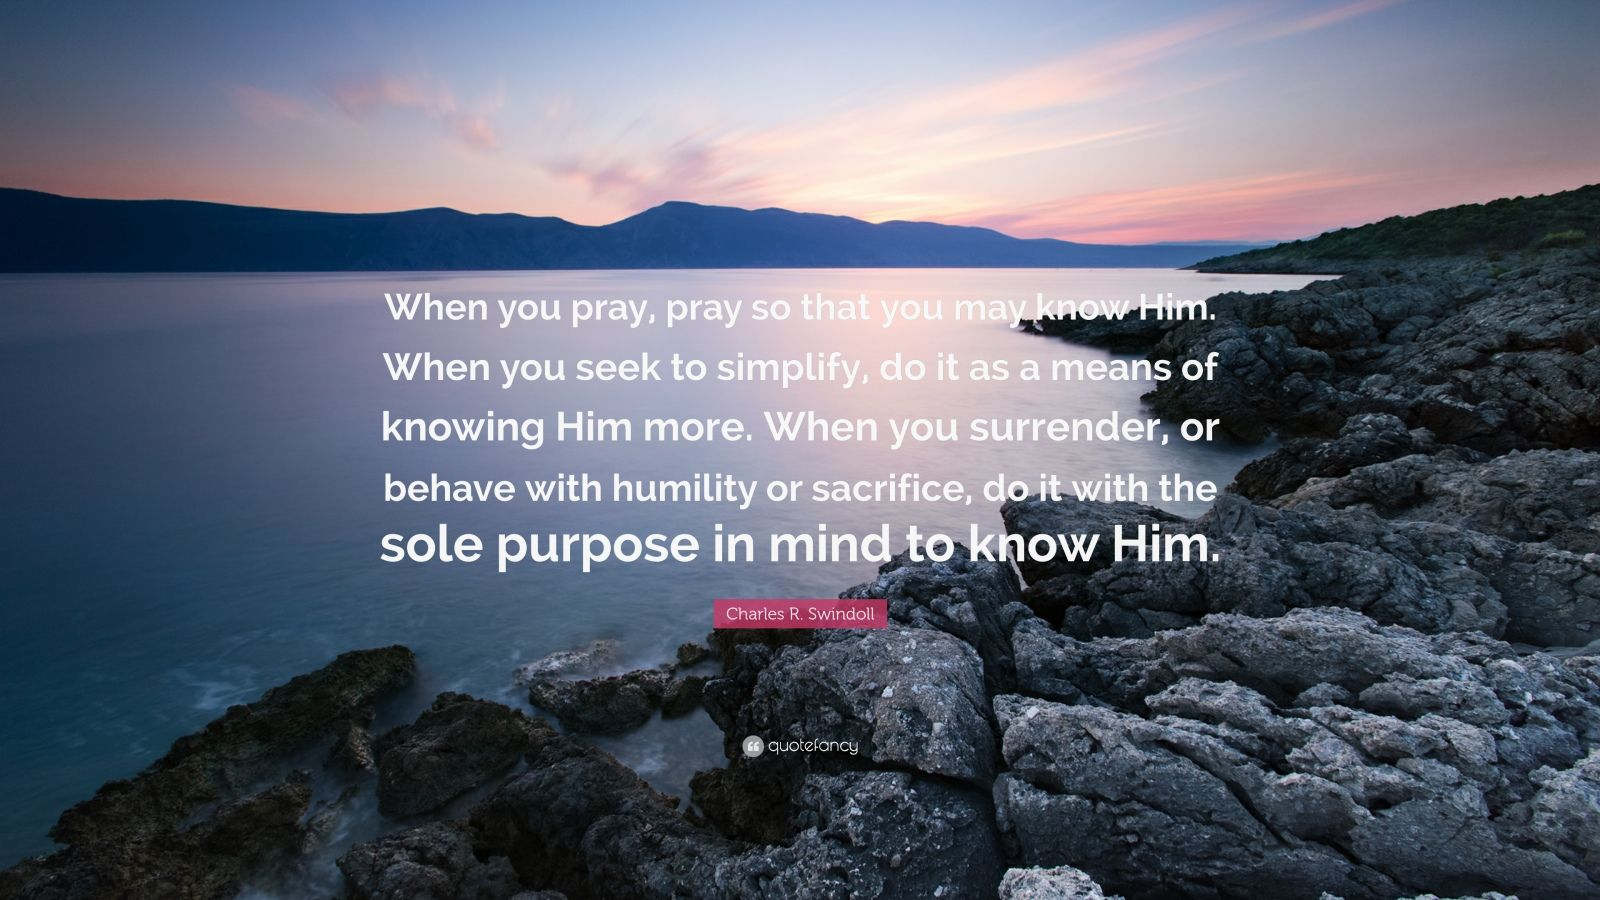 """Charles R. Swindoll Quote: """"When you pray, pray so that you may know Him. When you seek to simplify, do it as a means of knowing Him more. When you surrender, or behave with humility or sacrifice, do it with the sole purpose in mind to know Him."""""""